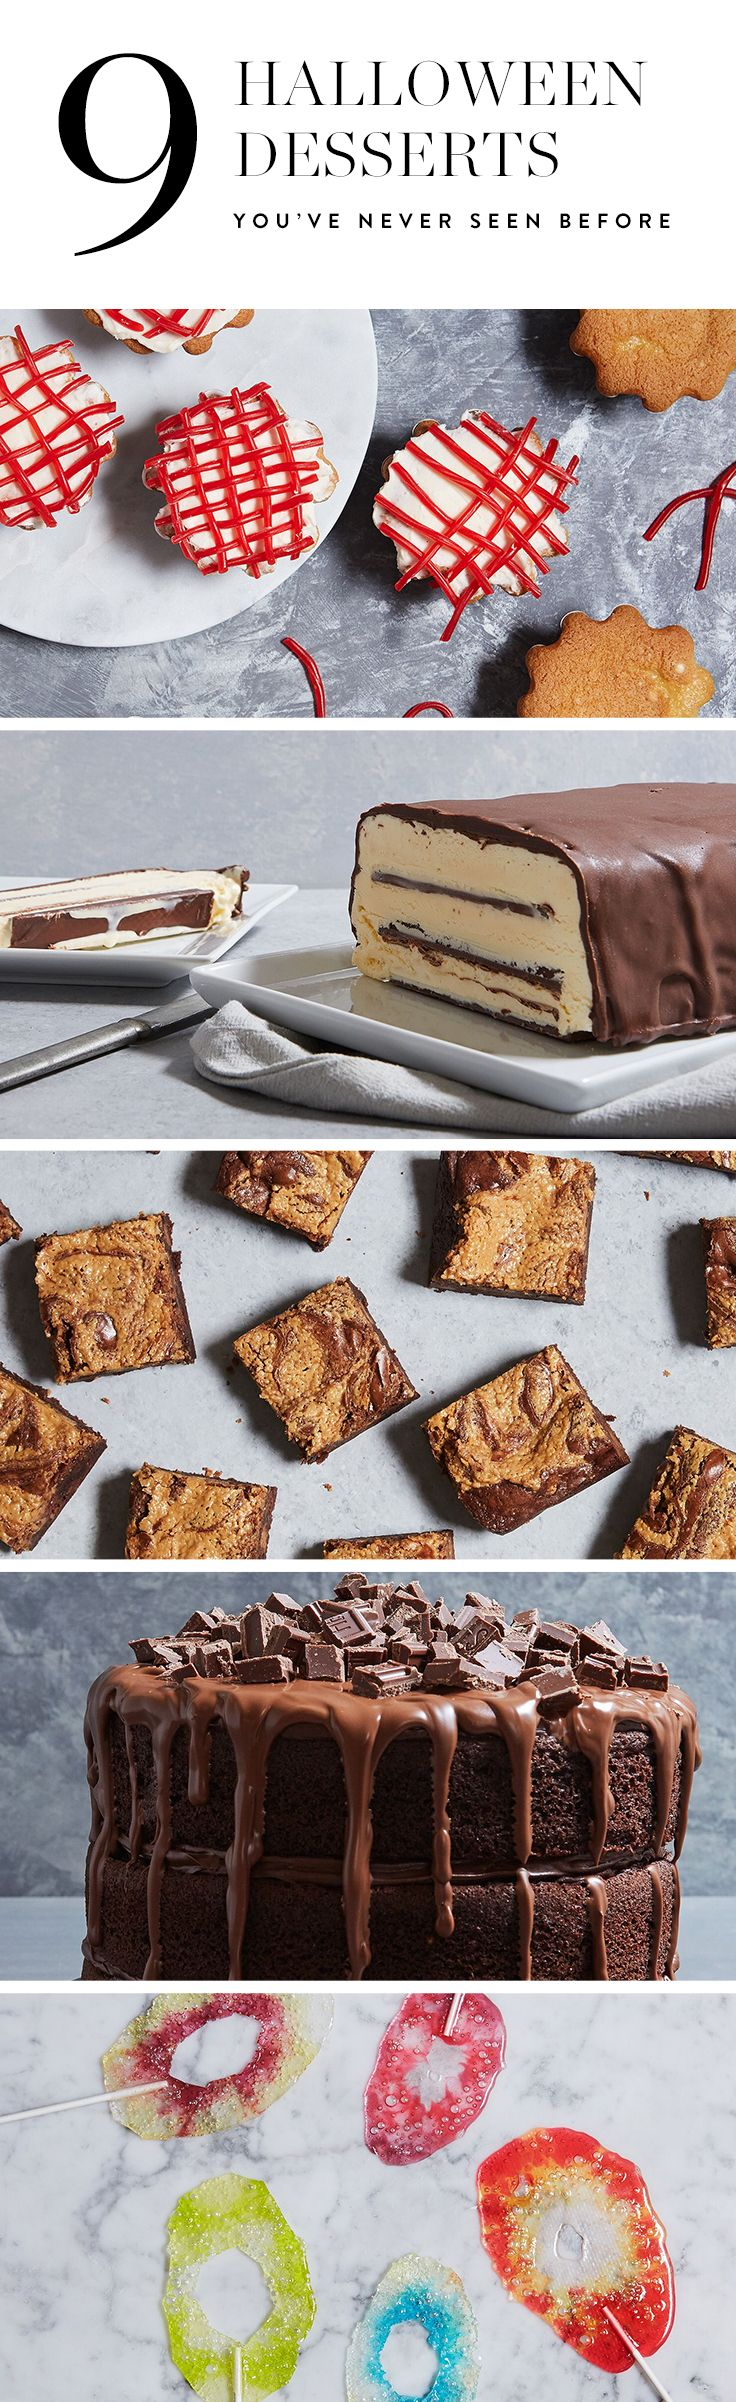 Looking for a festive way to bring Halloween to life? These 9 desserts incorporate your favorite candy, from Jolly Rancher candy apples, to Reese's peanut butter brownies. Get the recipes and try these at home.